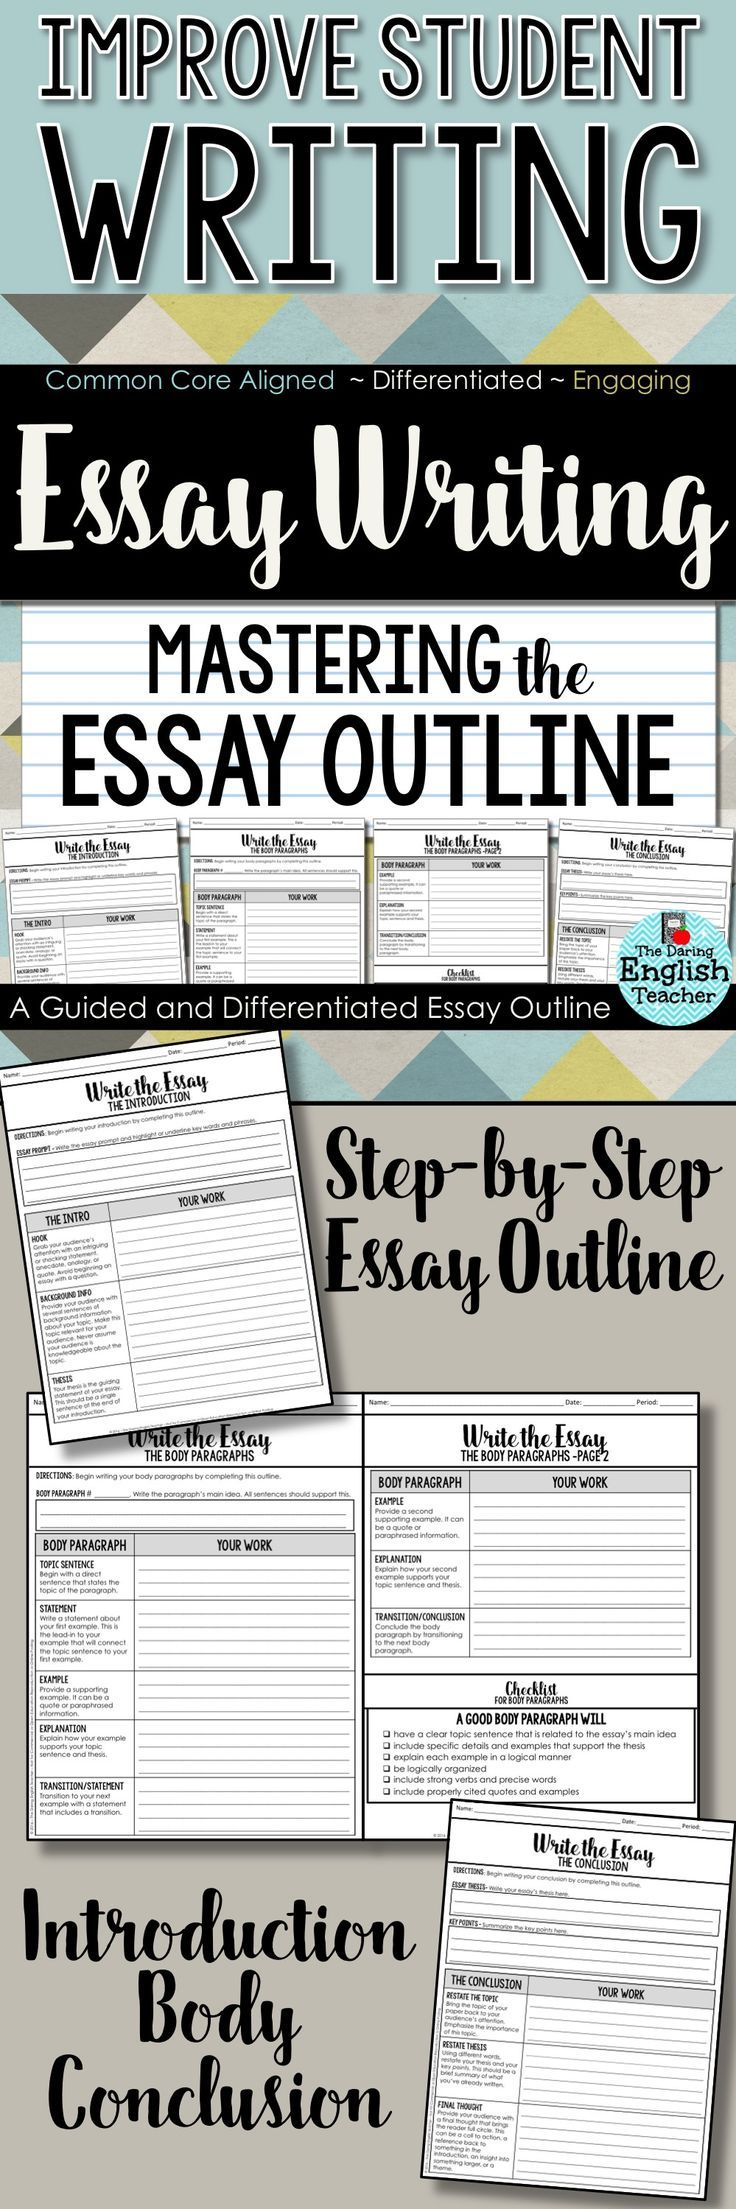 best images about essay writing writing an essay guide students step by step through the essay writing process this guided essay